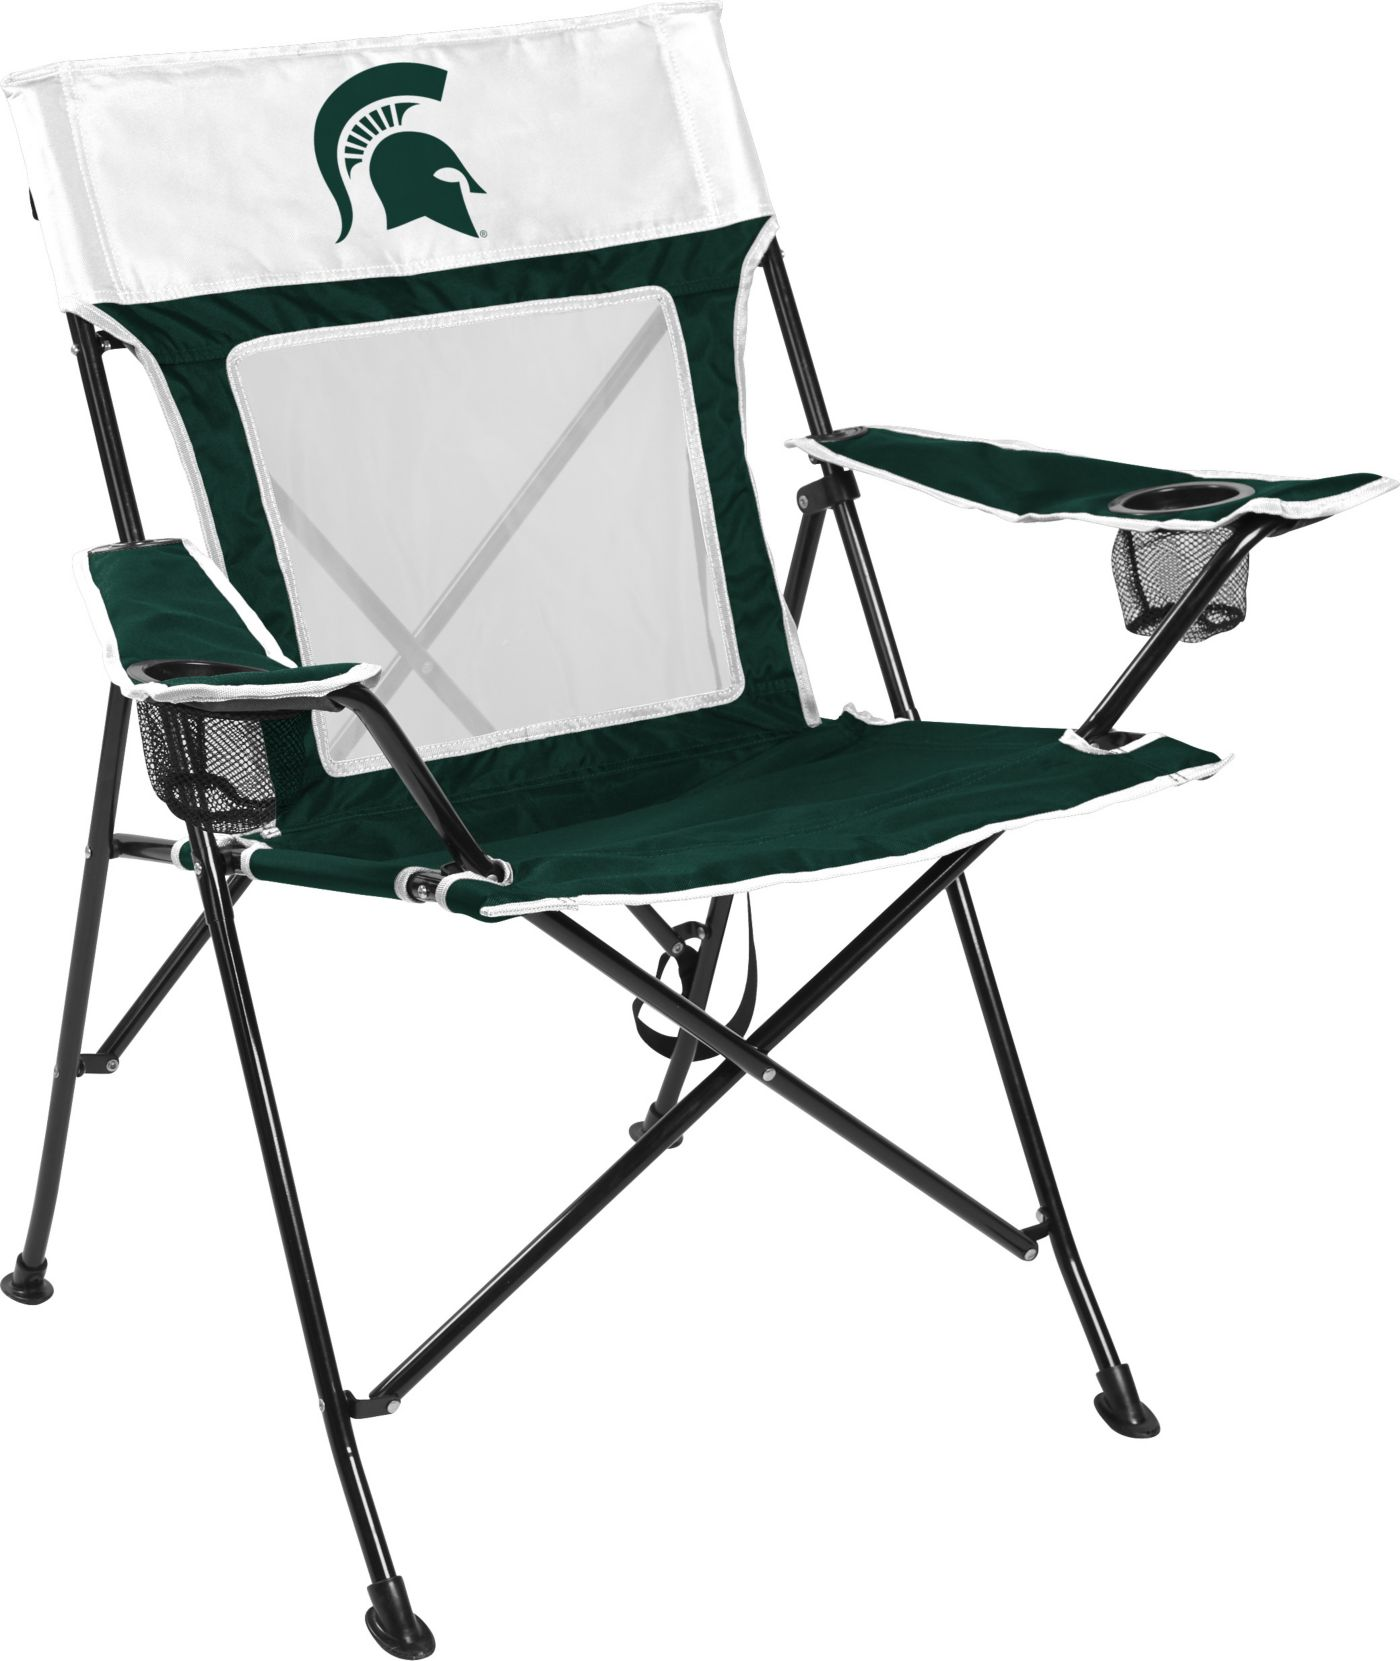 Rawlings Michigan State Spartans Game Changer Chair